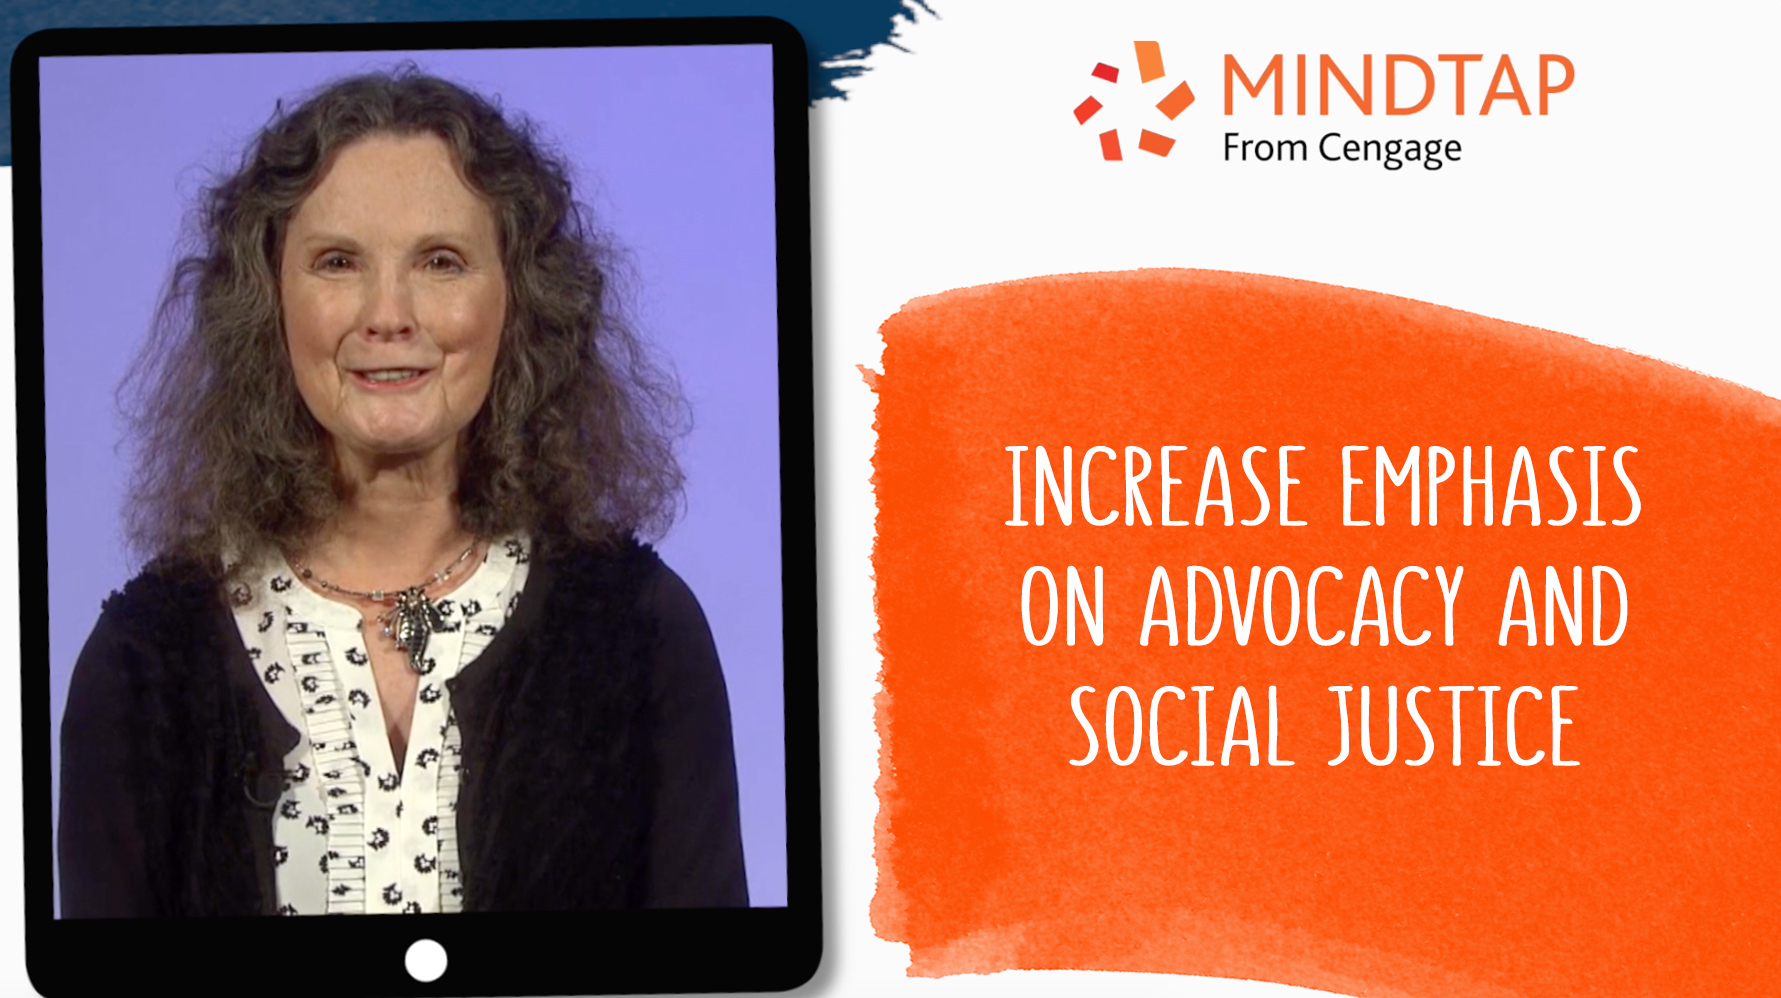 Increase Emphasis on Advocacy and Social Justice